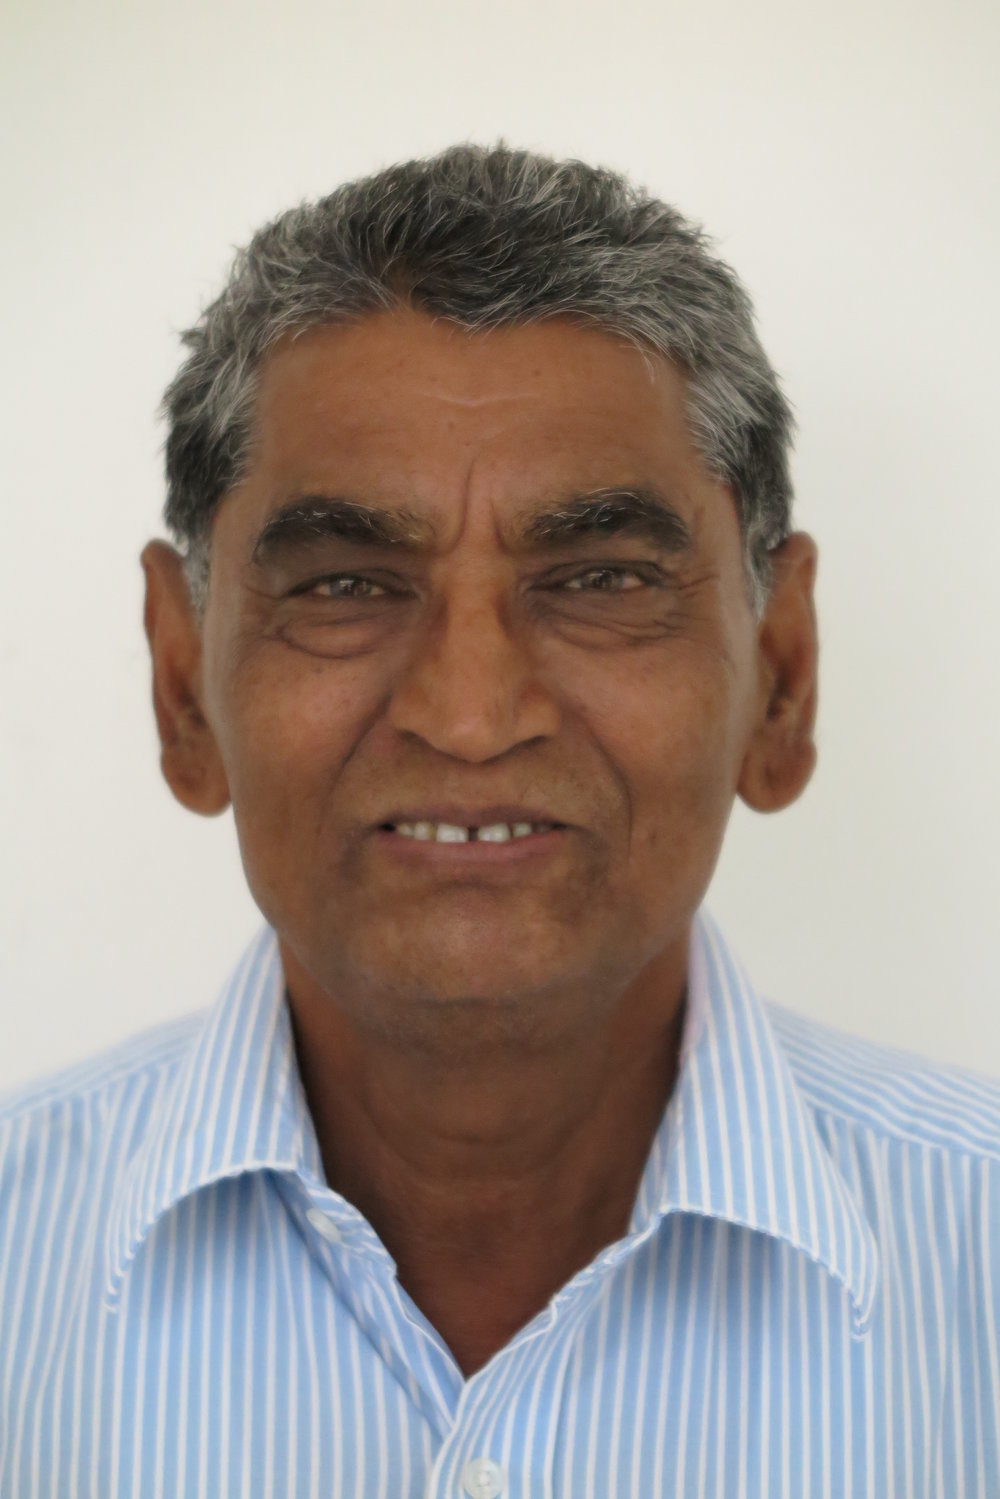 Mr. Hari Bade Mr. Hari Bade is a leprosy-afflicted person. However, with his remarkable determination, integrity and hard work, he became the head of Somnath Project of MSS and now manages all affairs there including agriculture.